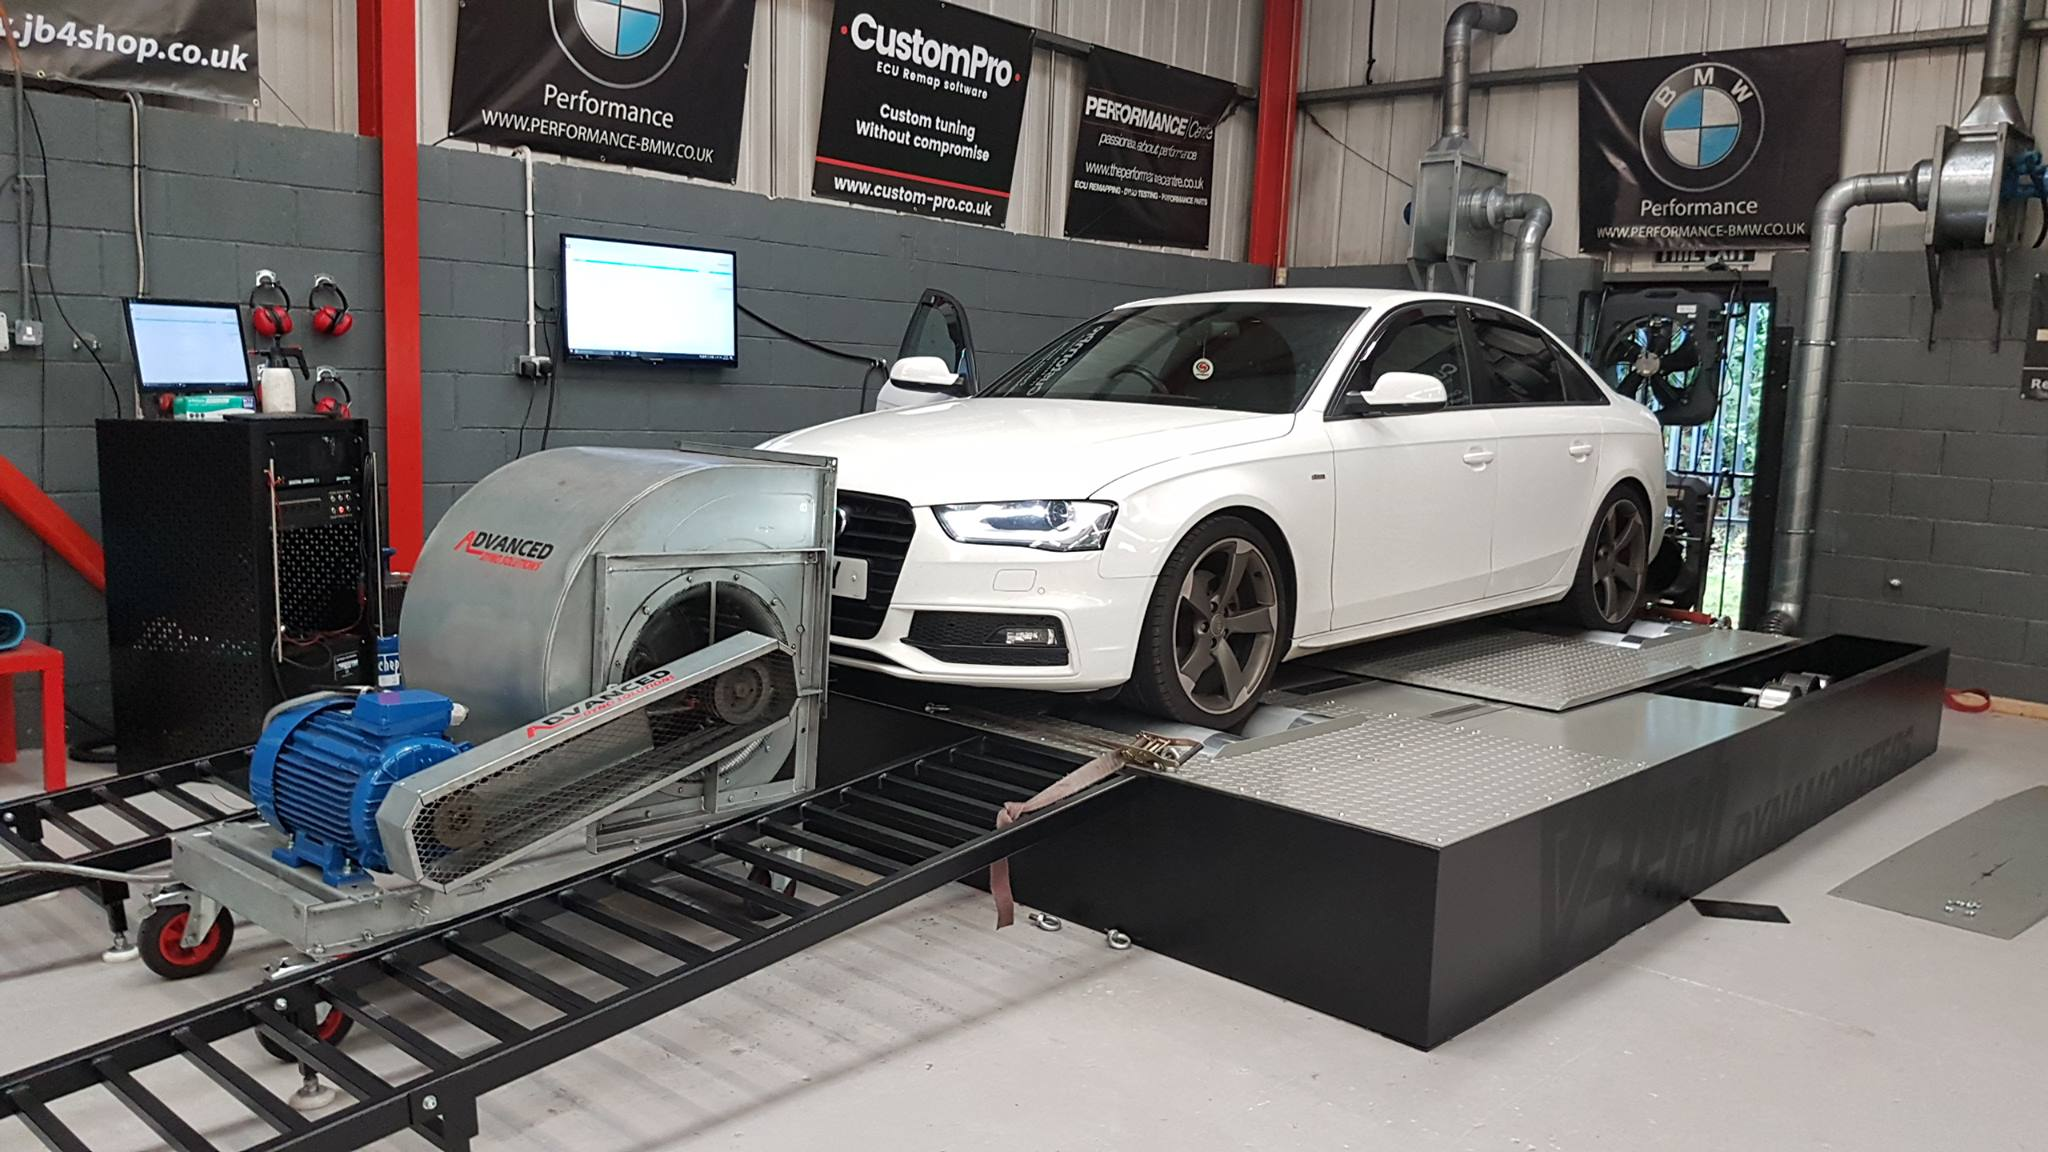 Audi A4 2.0 - CustomPro remap